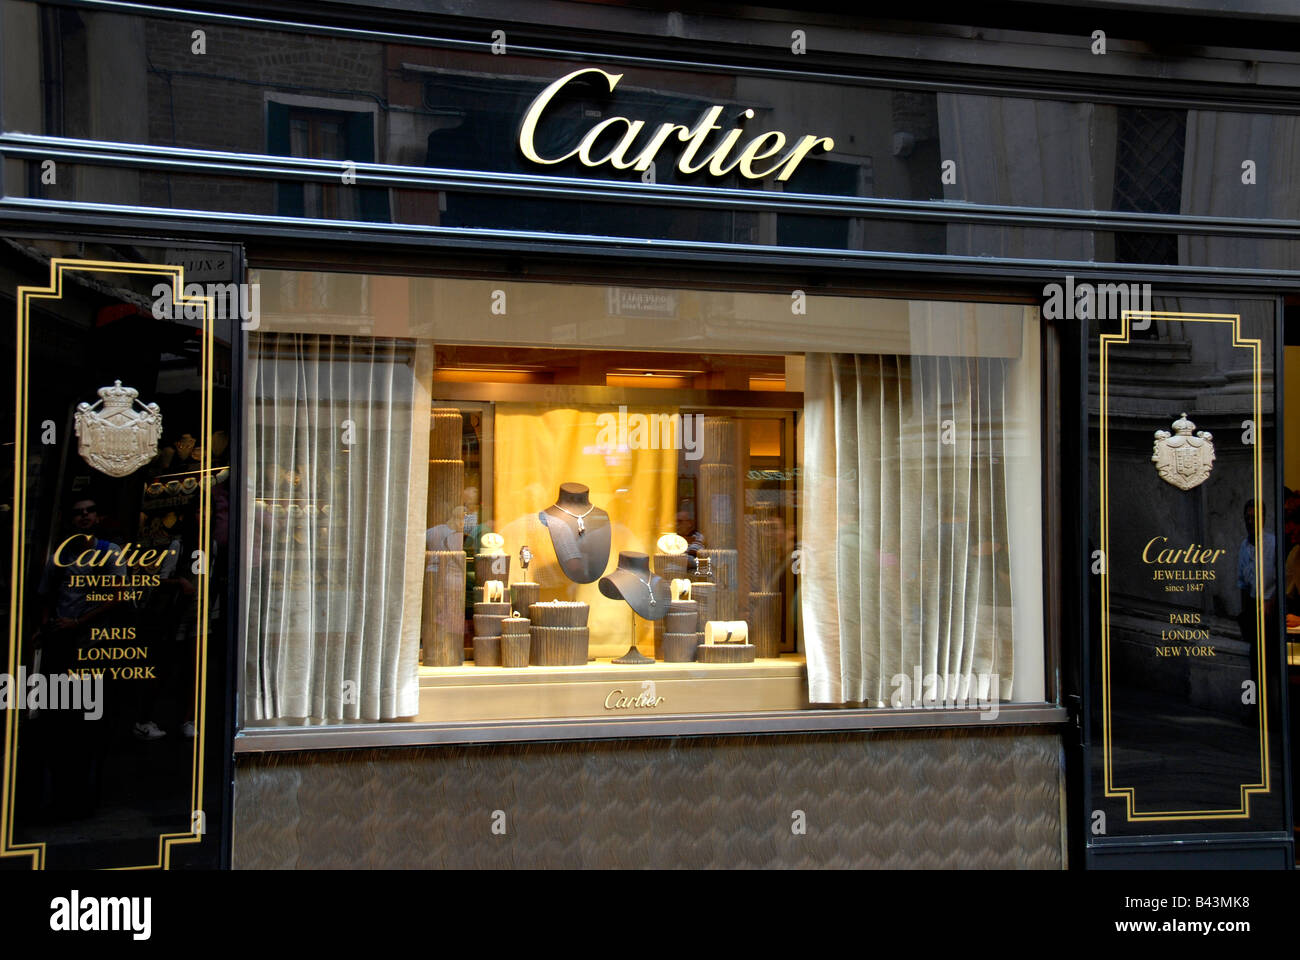 Cartier Outlet Store